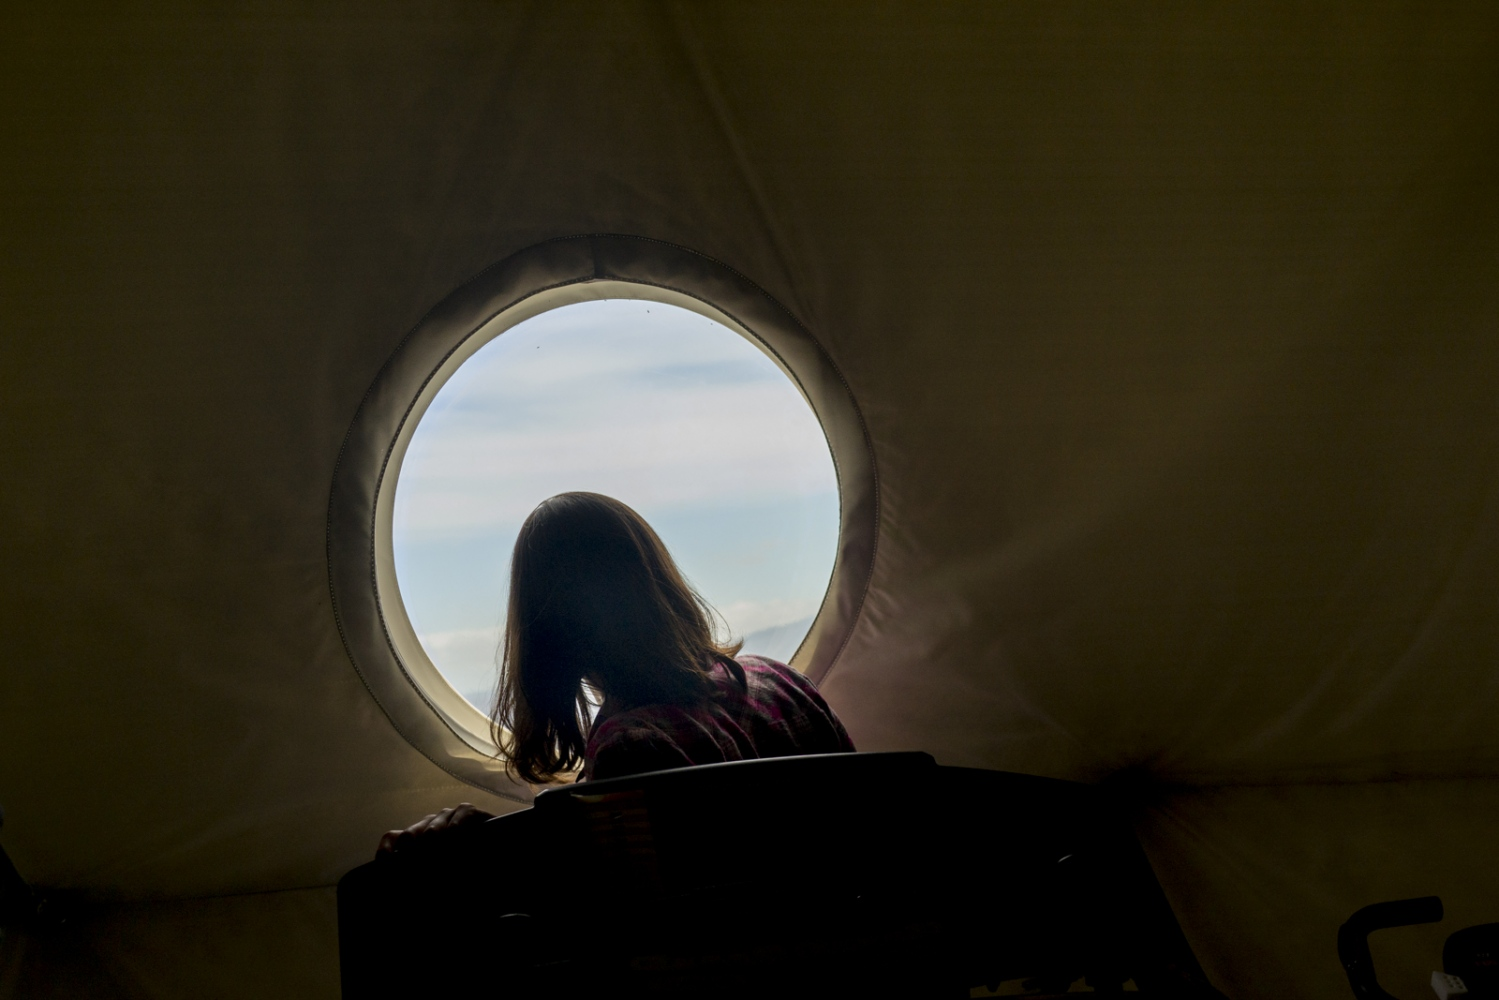 Researcher Jocelyn Dunn looks out of the dome where she's been living for eight months together with other other five researchers in the crater of the volcano Mauna Loa, Hawaii, Big Island.